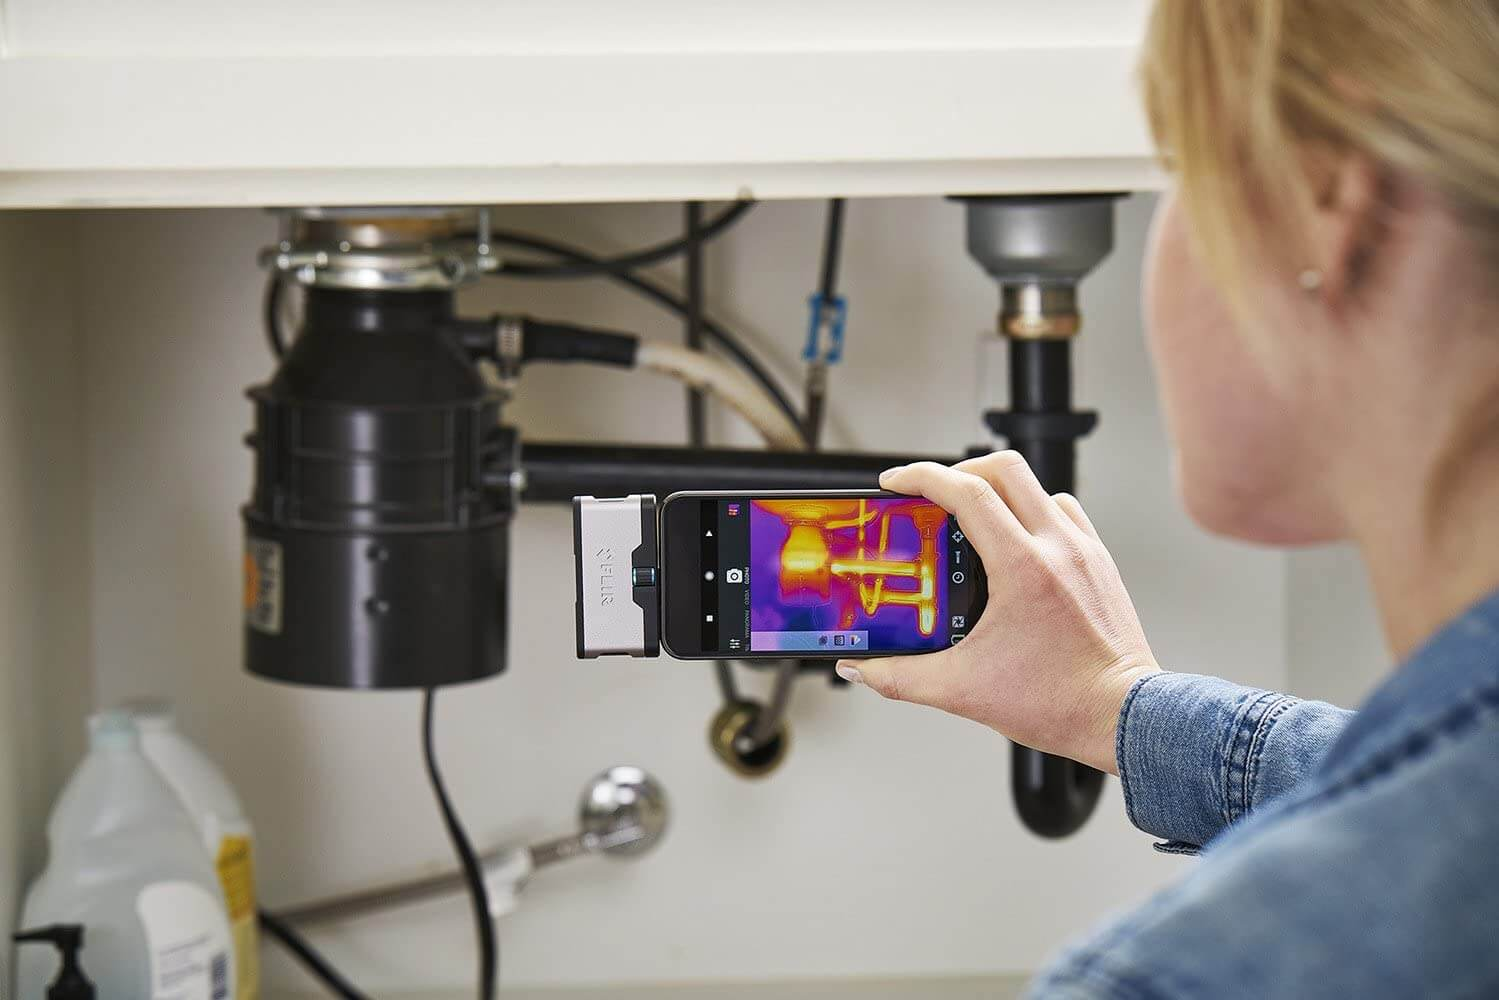 Best Thermal Imaging Camera for Android - FLIR ONE 3rd Gen Compatibility